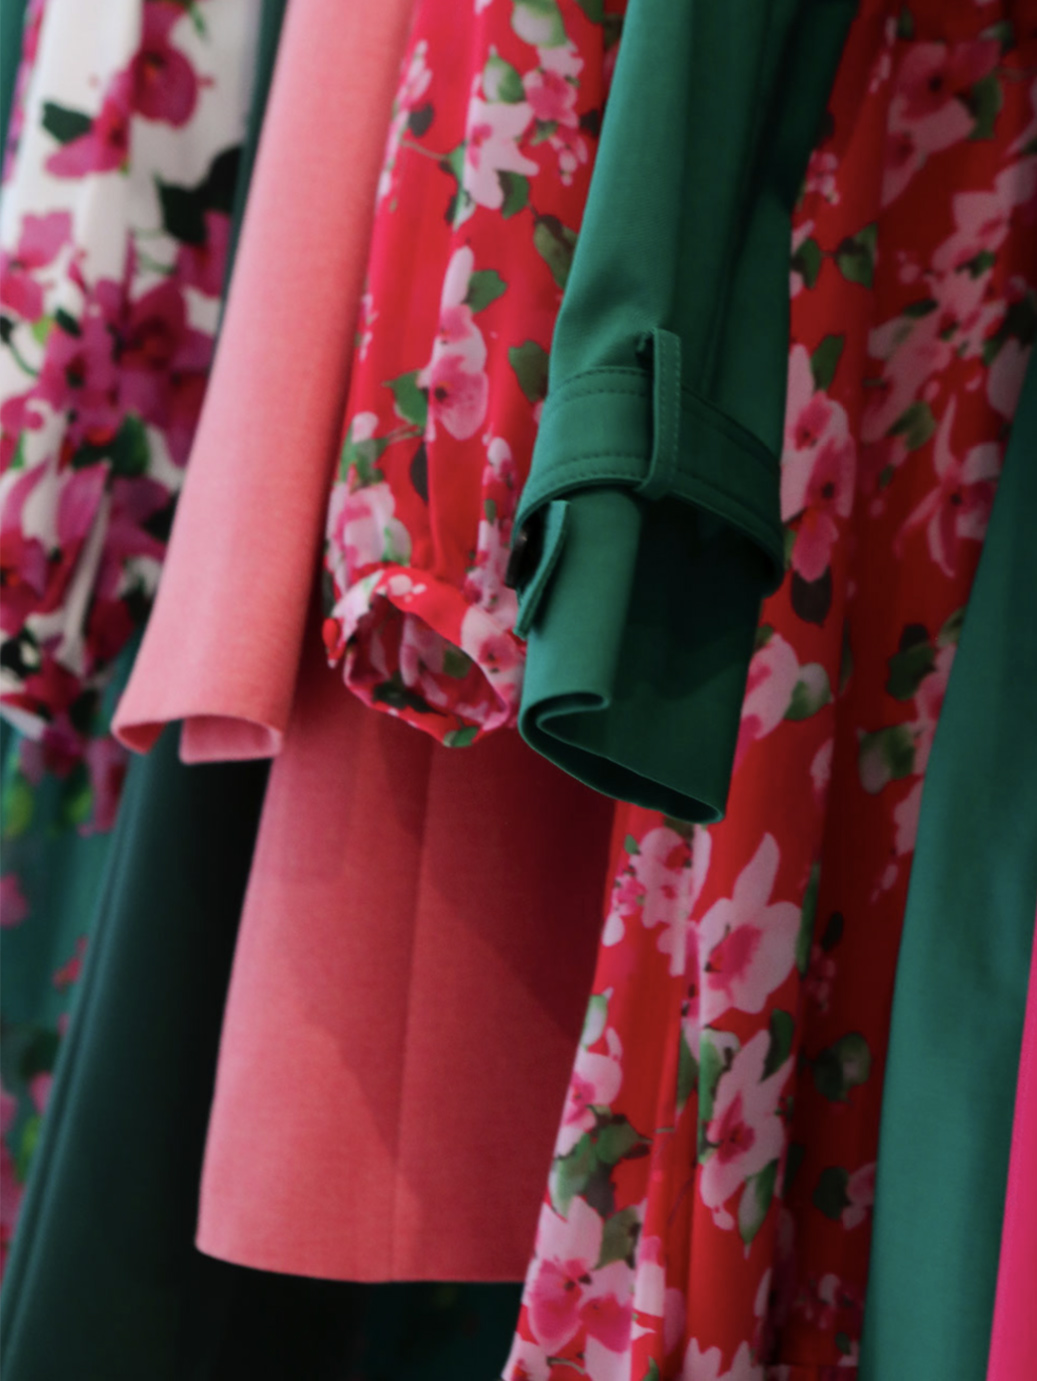 BlInterior image of wardobe featuring bright pink, green and floral clothing